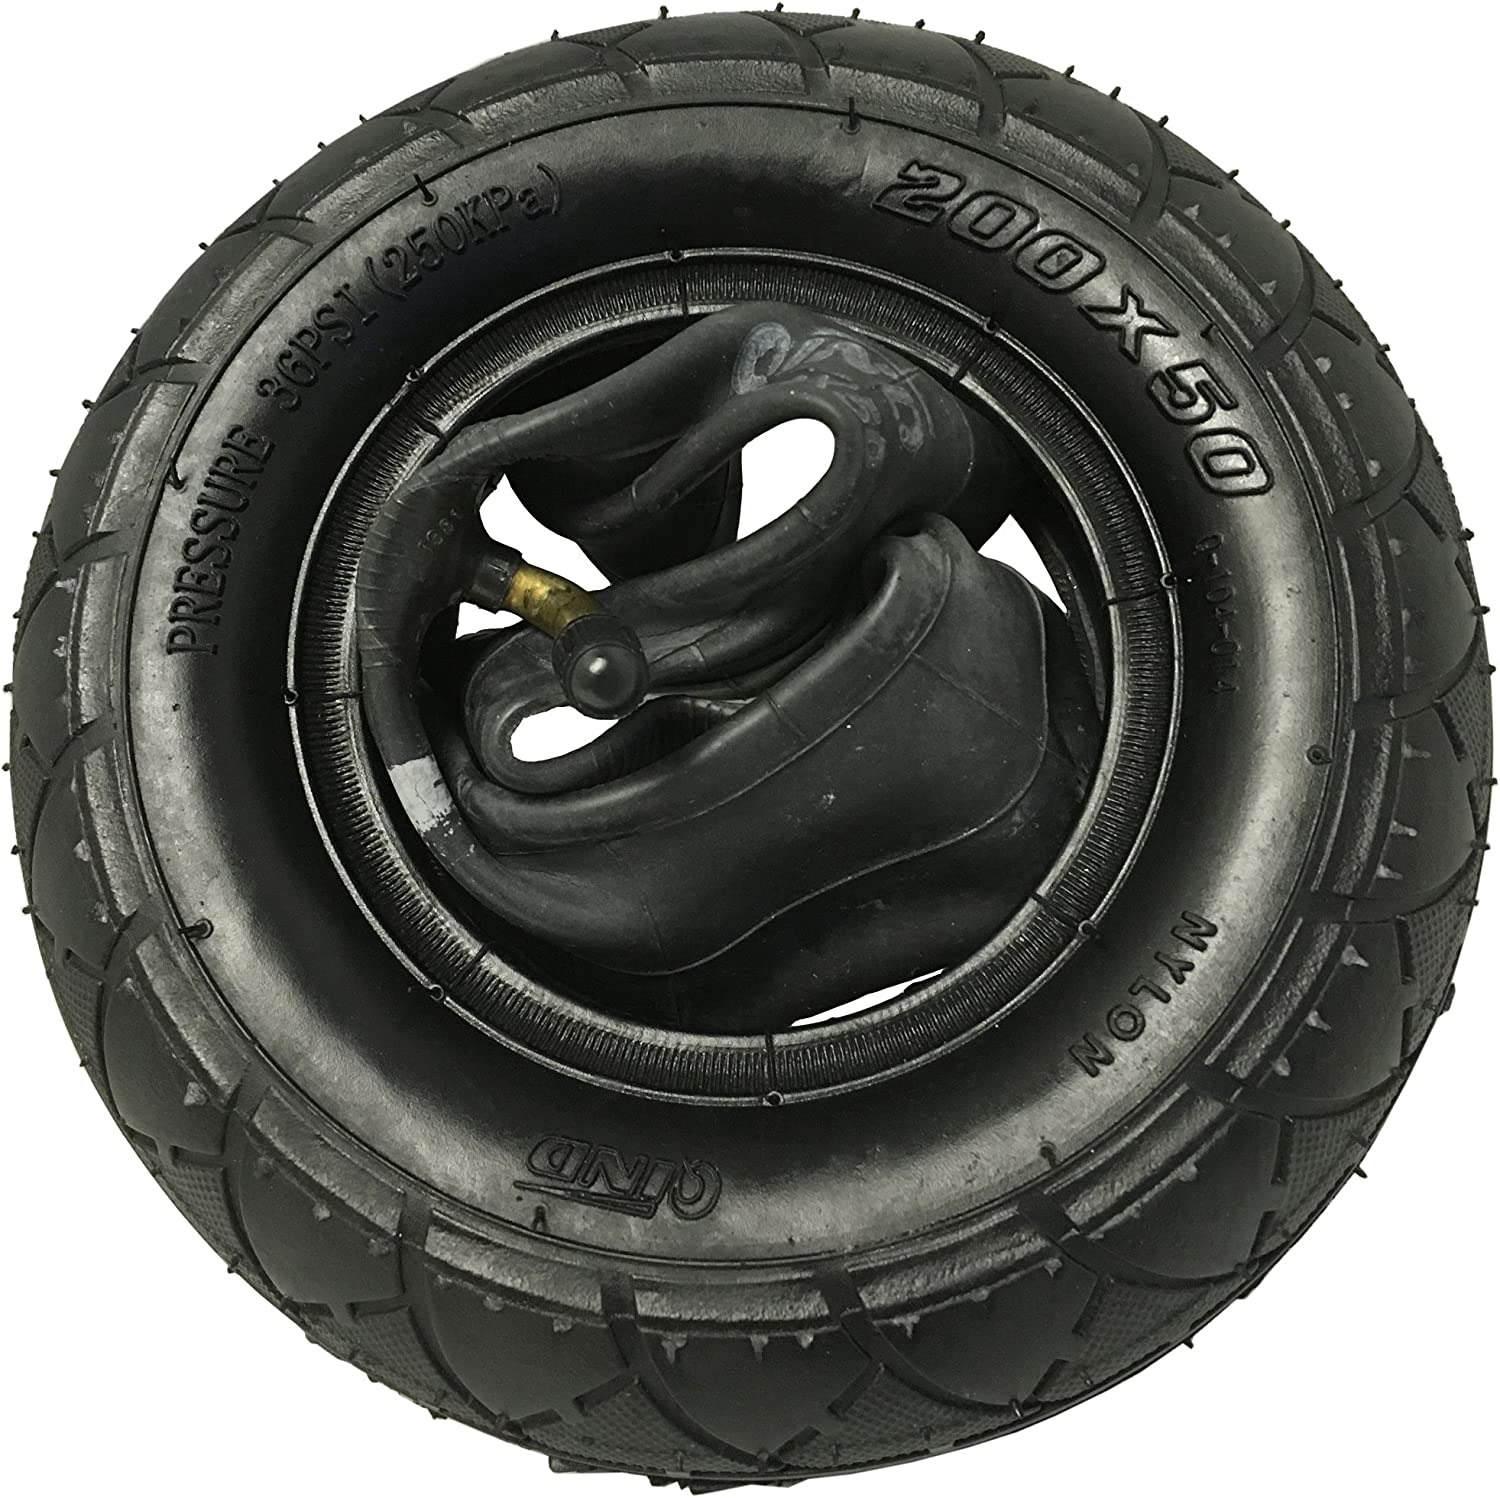 Sunlite Scooter 200x50 8x2 Inner Bike Tube With Bent Schrader Valve//Kenda//One